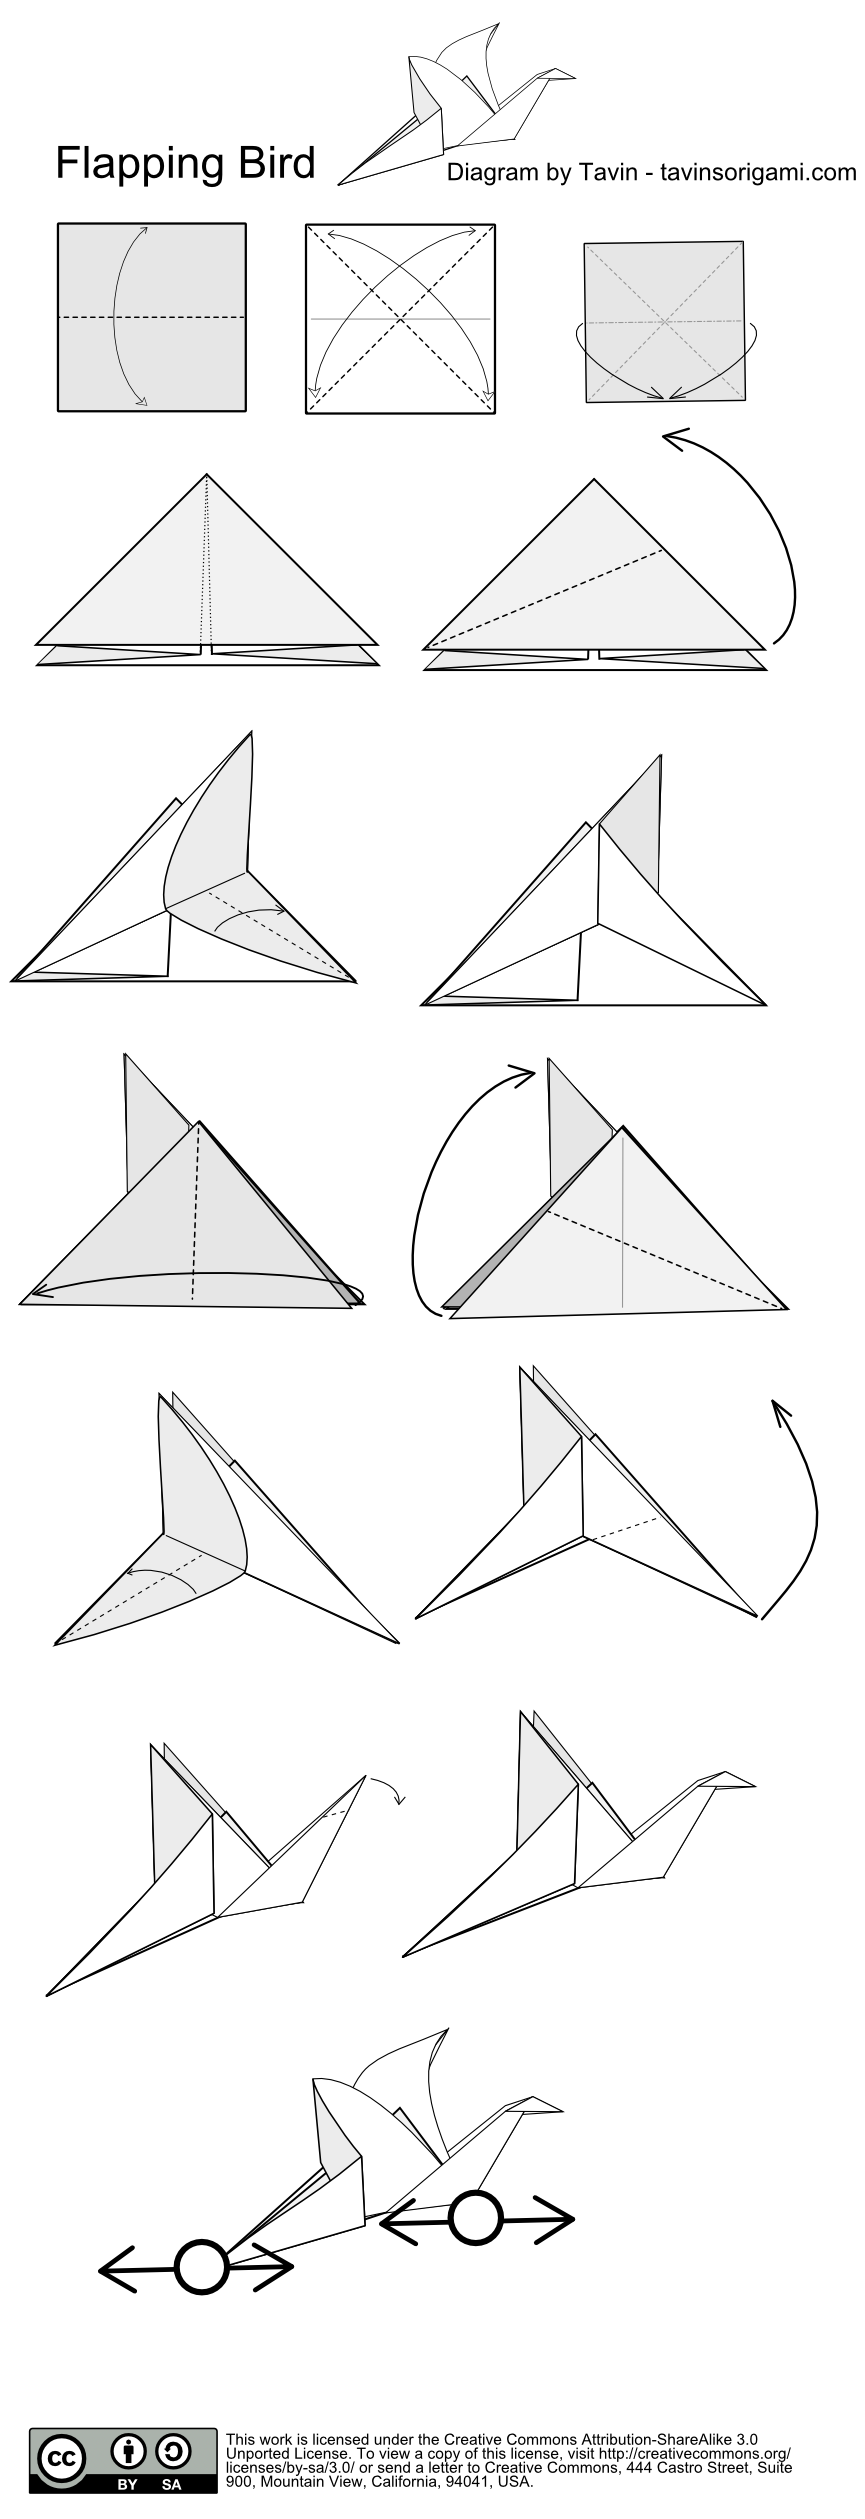 My Review of LaFosse & Alexander's Essential Book of Origami | 2519x865